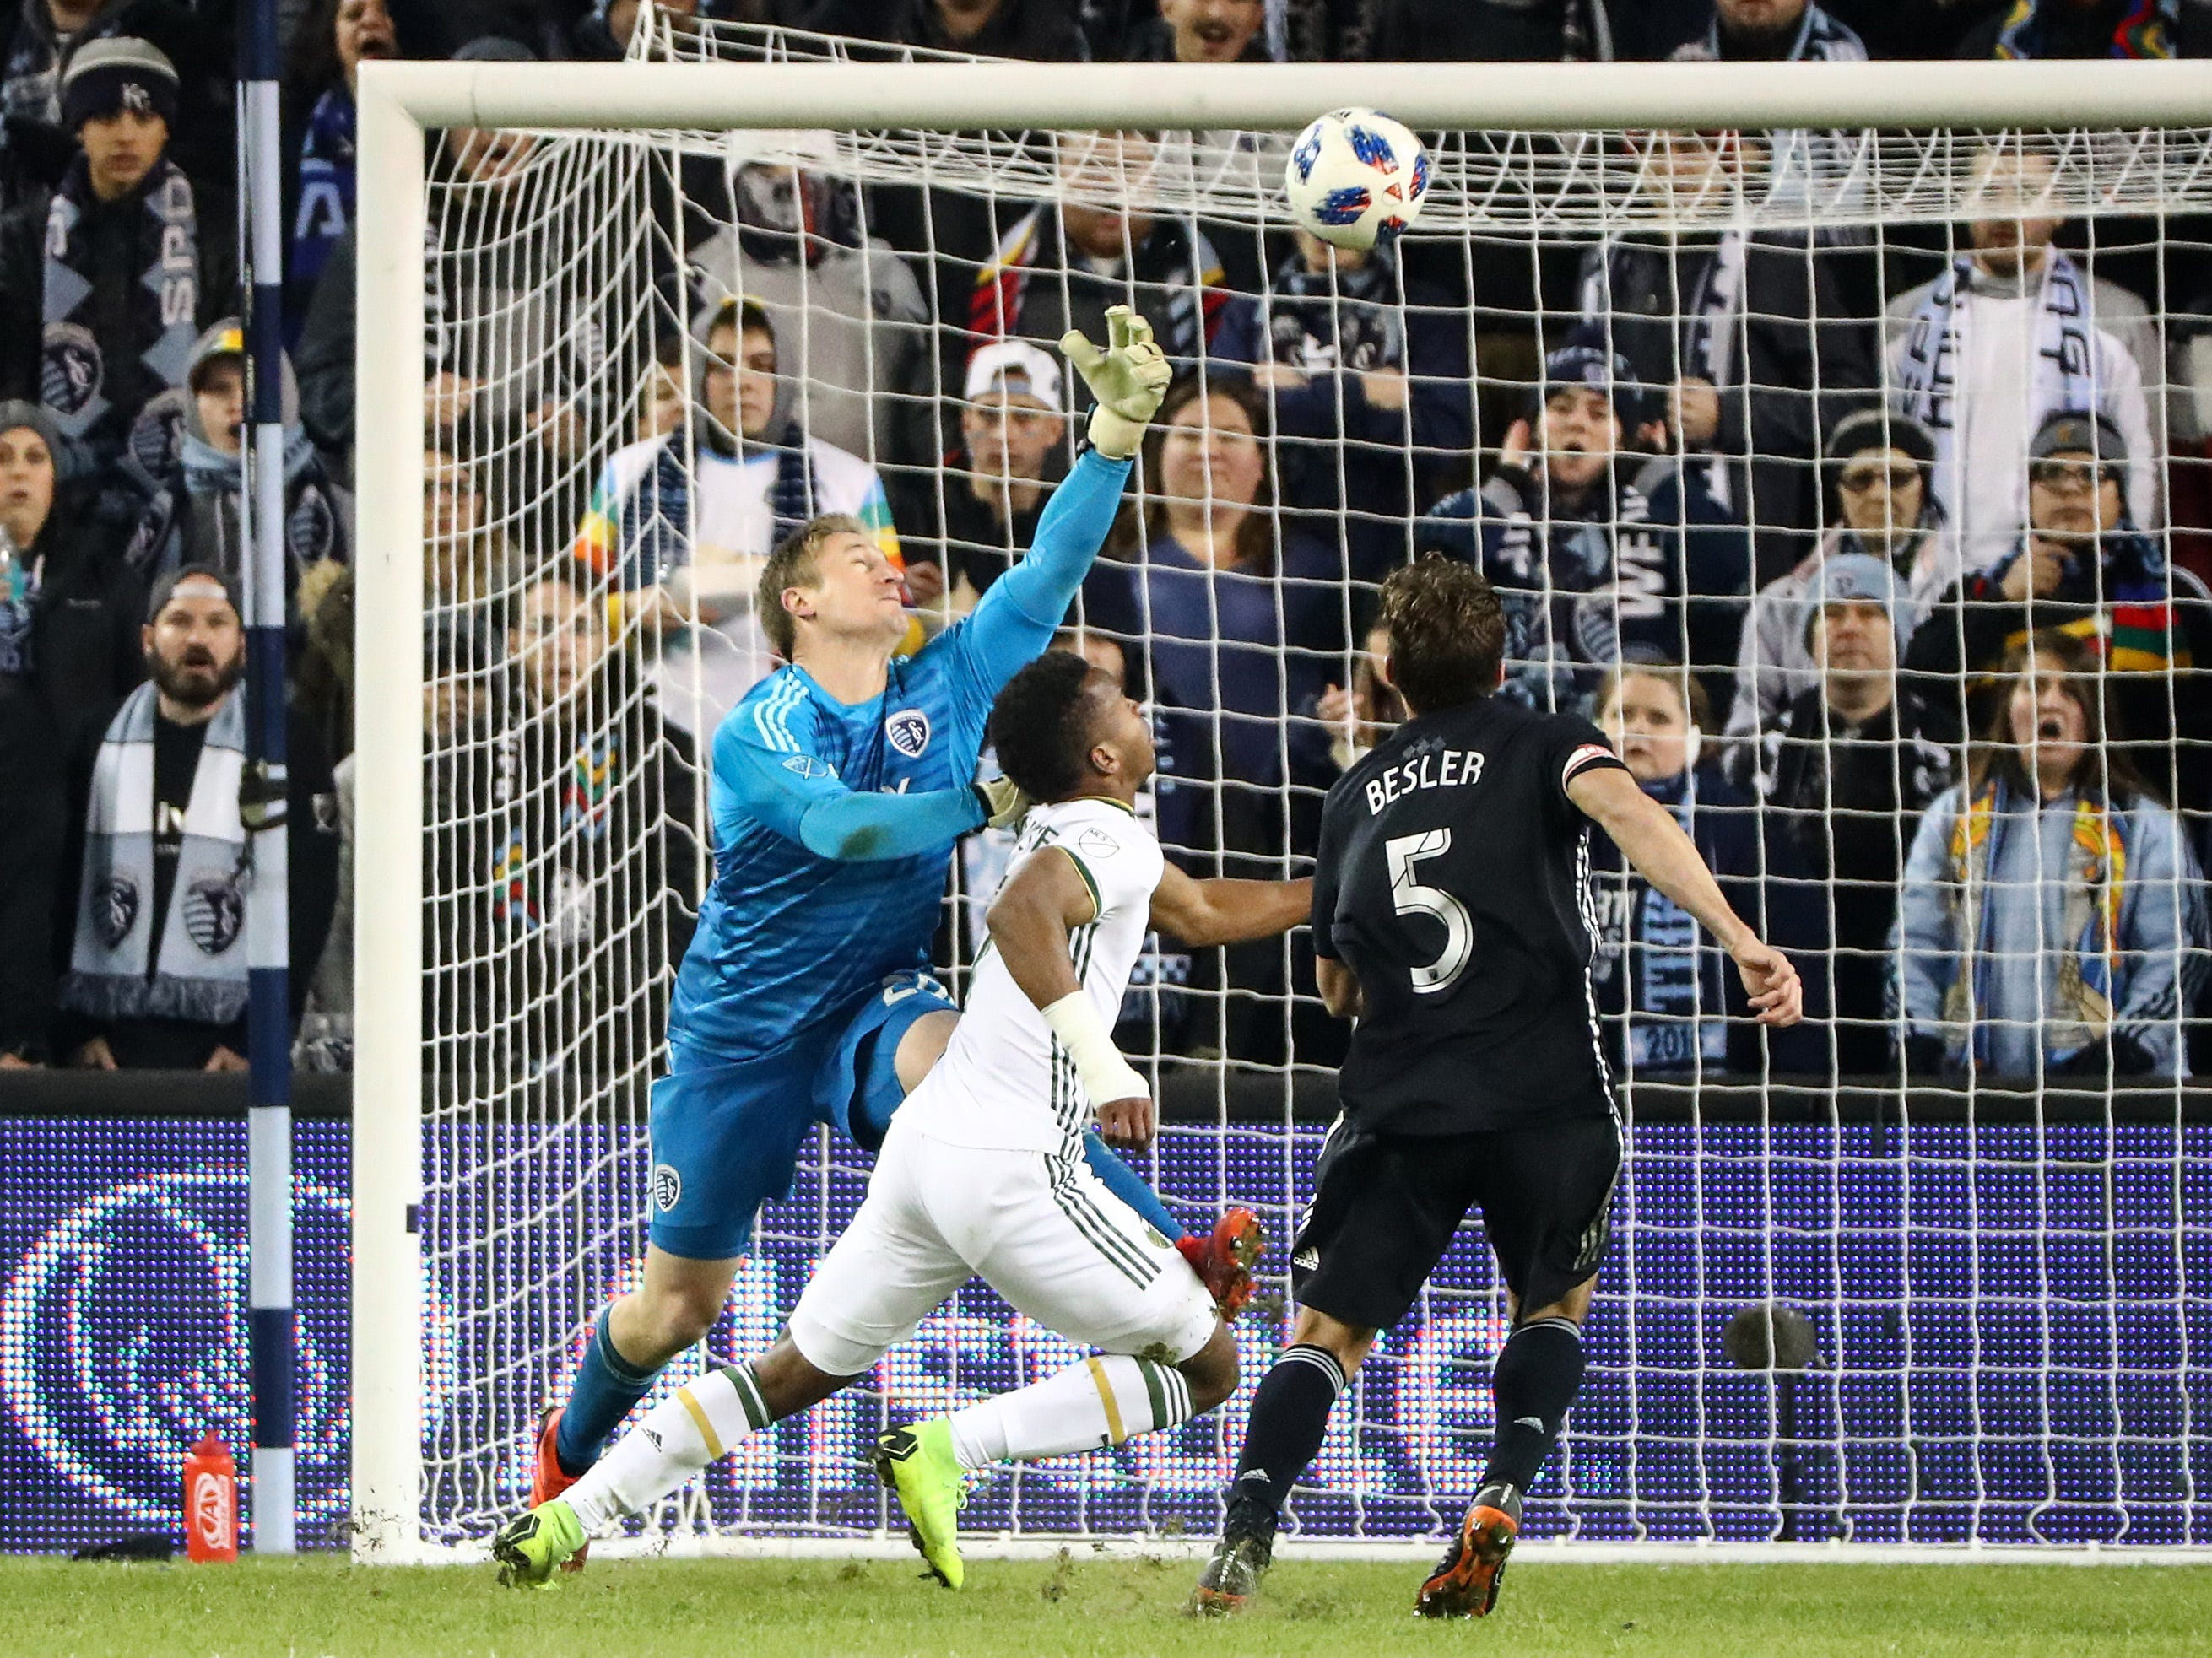 Nov 29, 2018; Kansas City, KS, USA; Sporting Kansas City goalkeeper Tim Melia (29) is unable to stop a pass from Portland Timbers forward Jeremy Ebobisse (17) during the second half in the second leg of the MLS Western Conference Championship at Children's Mercy Park. Mandatory Credit: Jay Biggerstaff-USA TODAY Sports